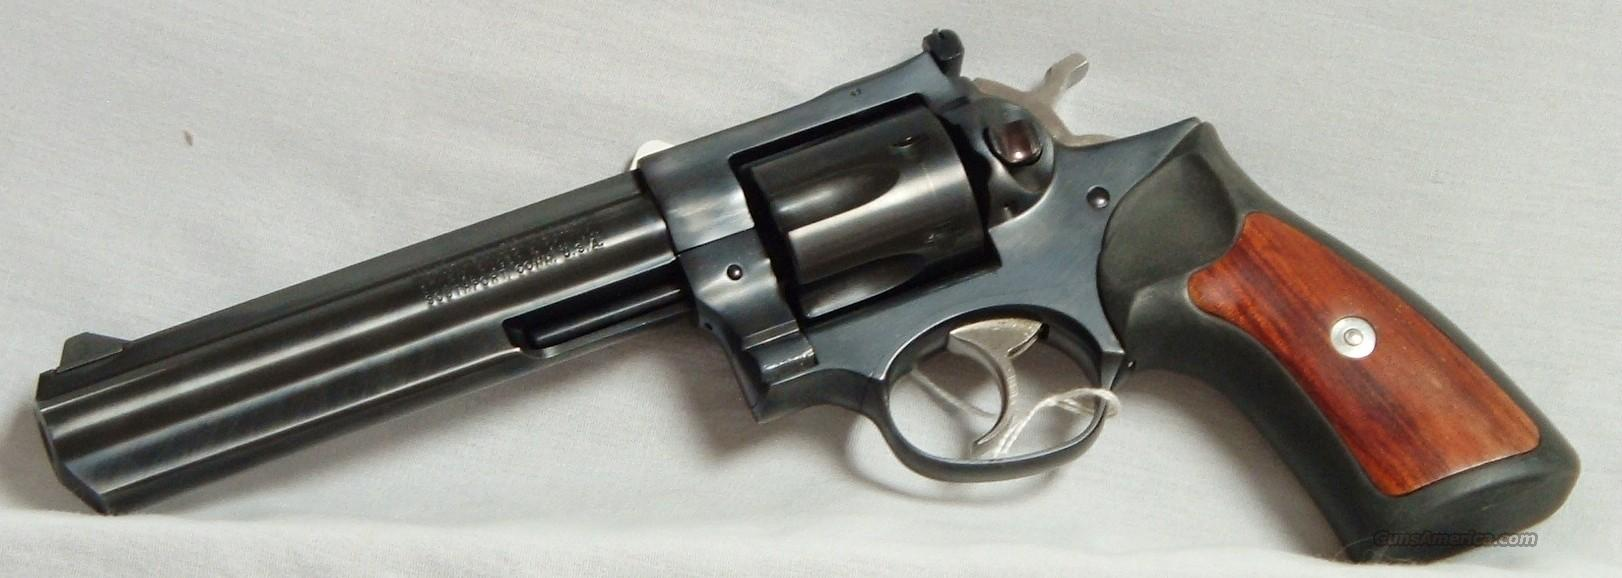 gp100  Guns > Pistols > Ruger Double Action Revolver > SP101 Type